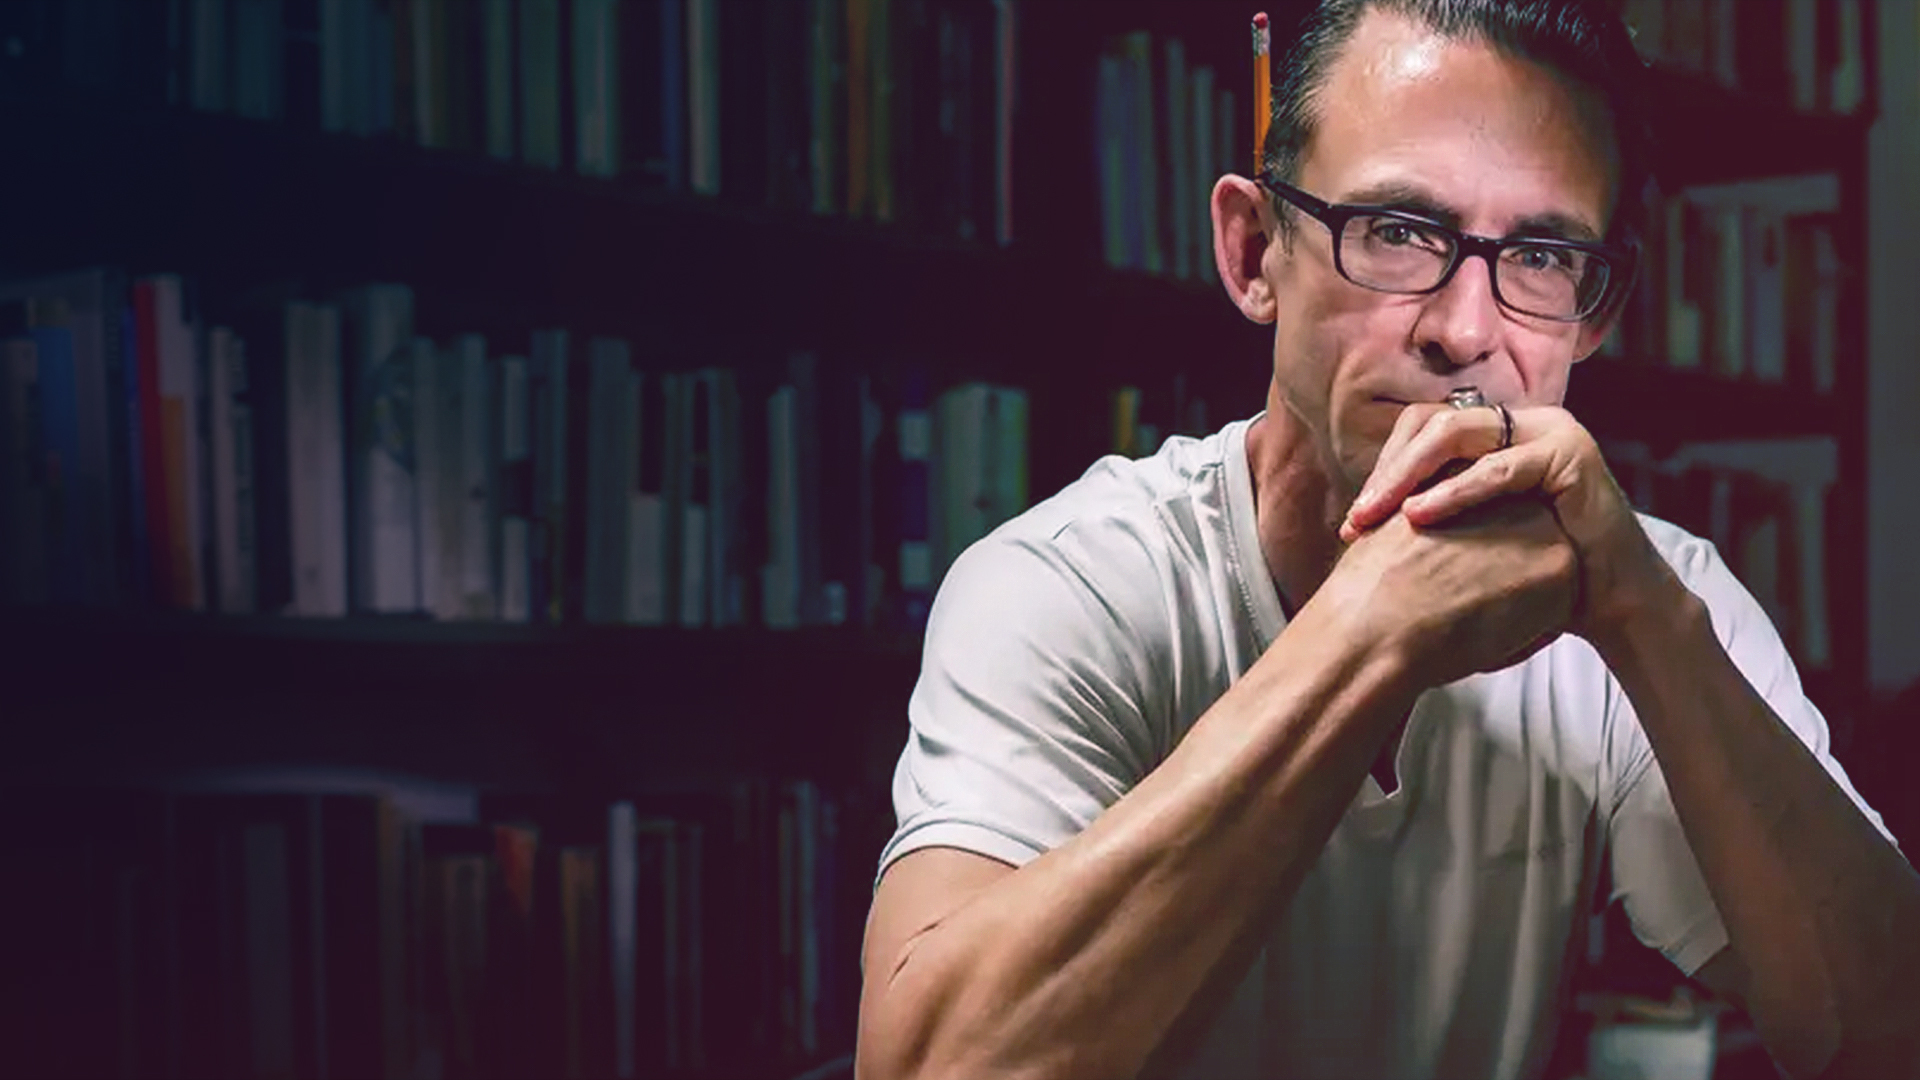 Chuck Palahniuk - How the Cult Author of Fight Club Made Nihilism Fun Again